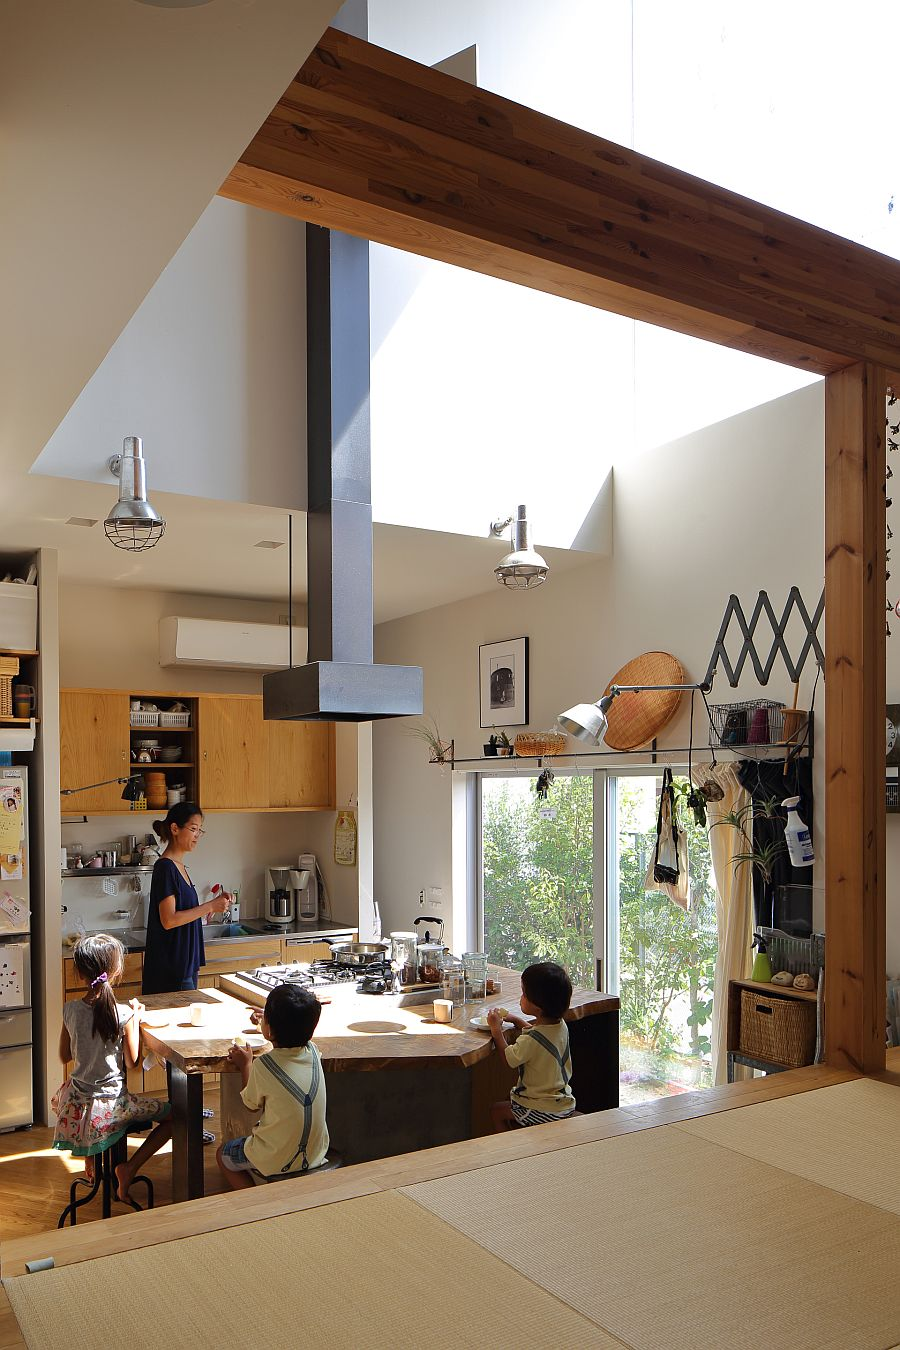 Spacious, double-height kitchen of the house also serves as the gathering space for entire family